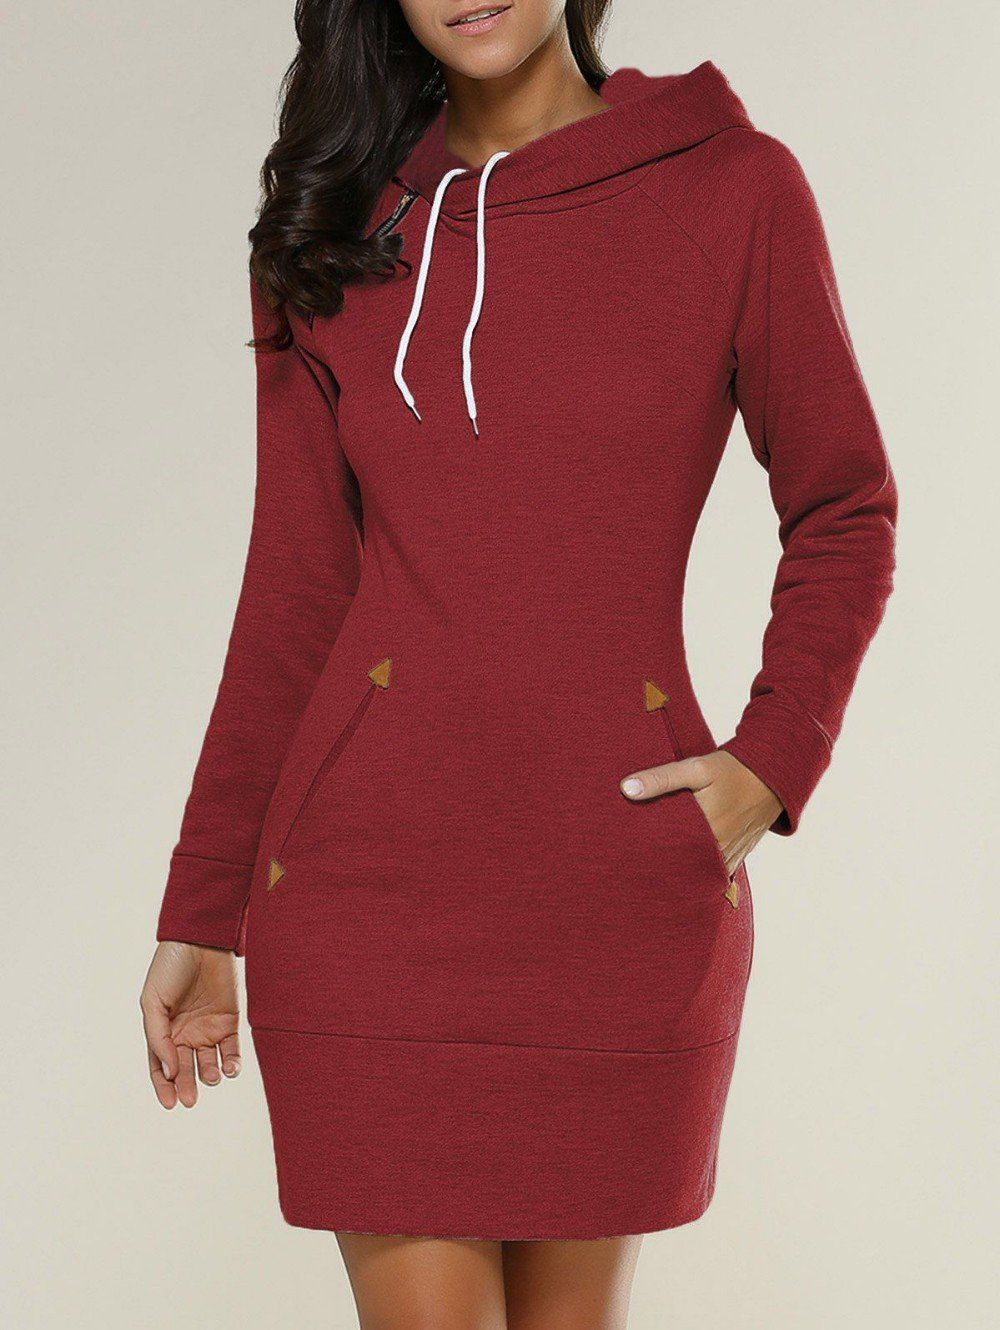 fda0db6d848 This knitted cotton hoodie sweatshirt dress hoodie is perfect for those  movie nights. It is lightweight warm and easy to wear. This is the best  thing next ...